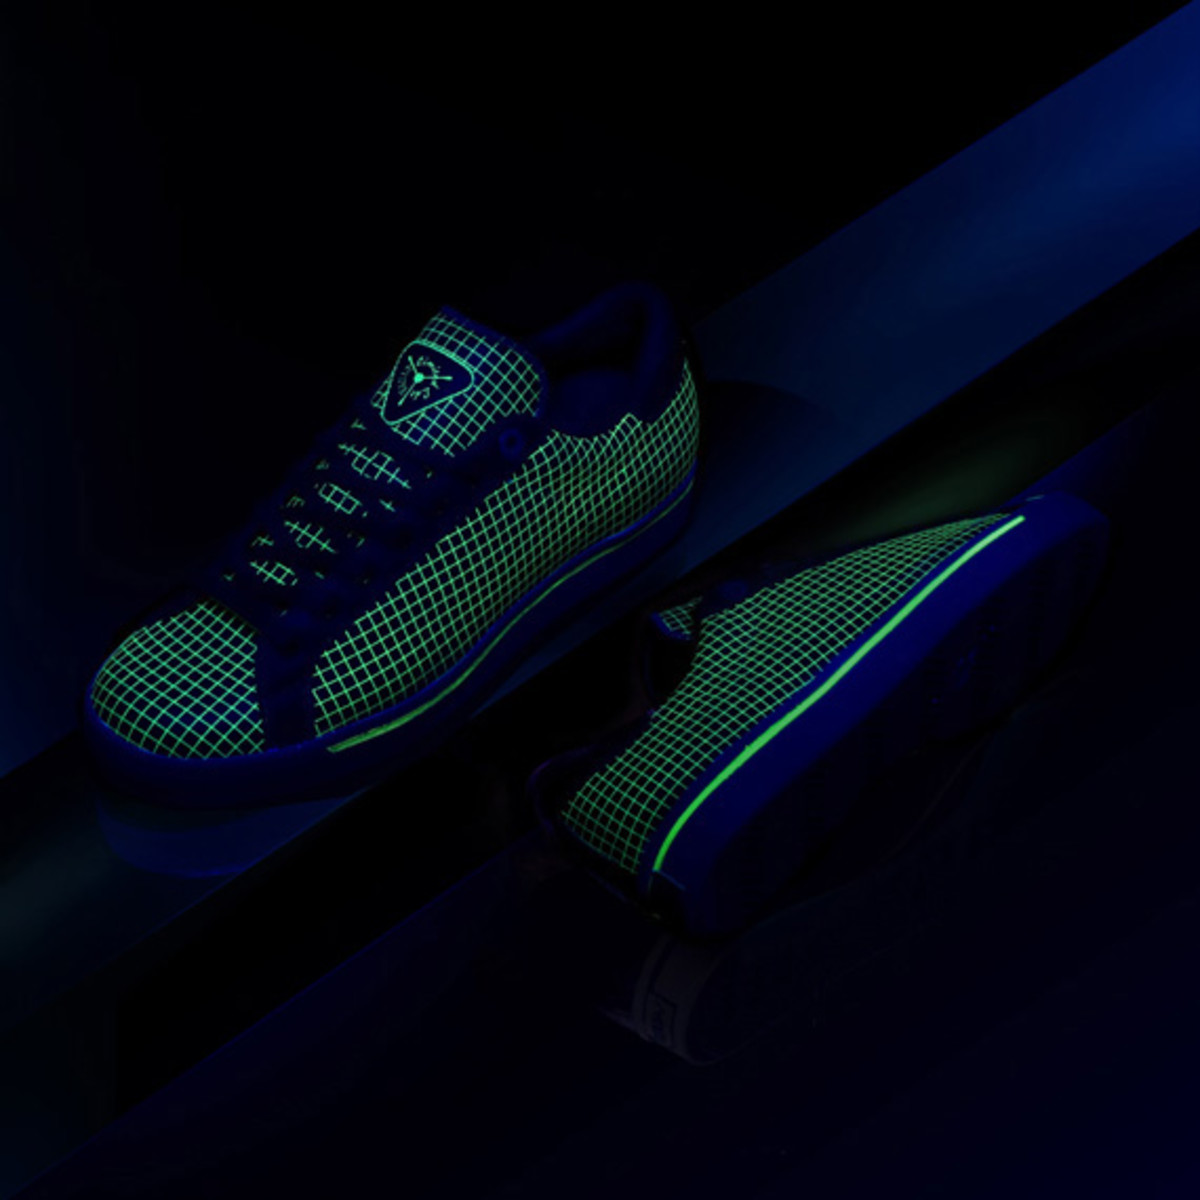 limited-edt-x-adidas-originals-consortium-rod-laver-02